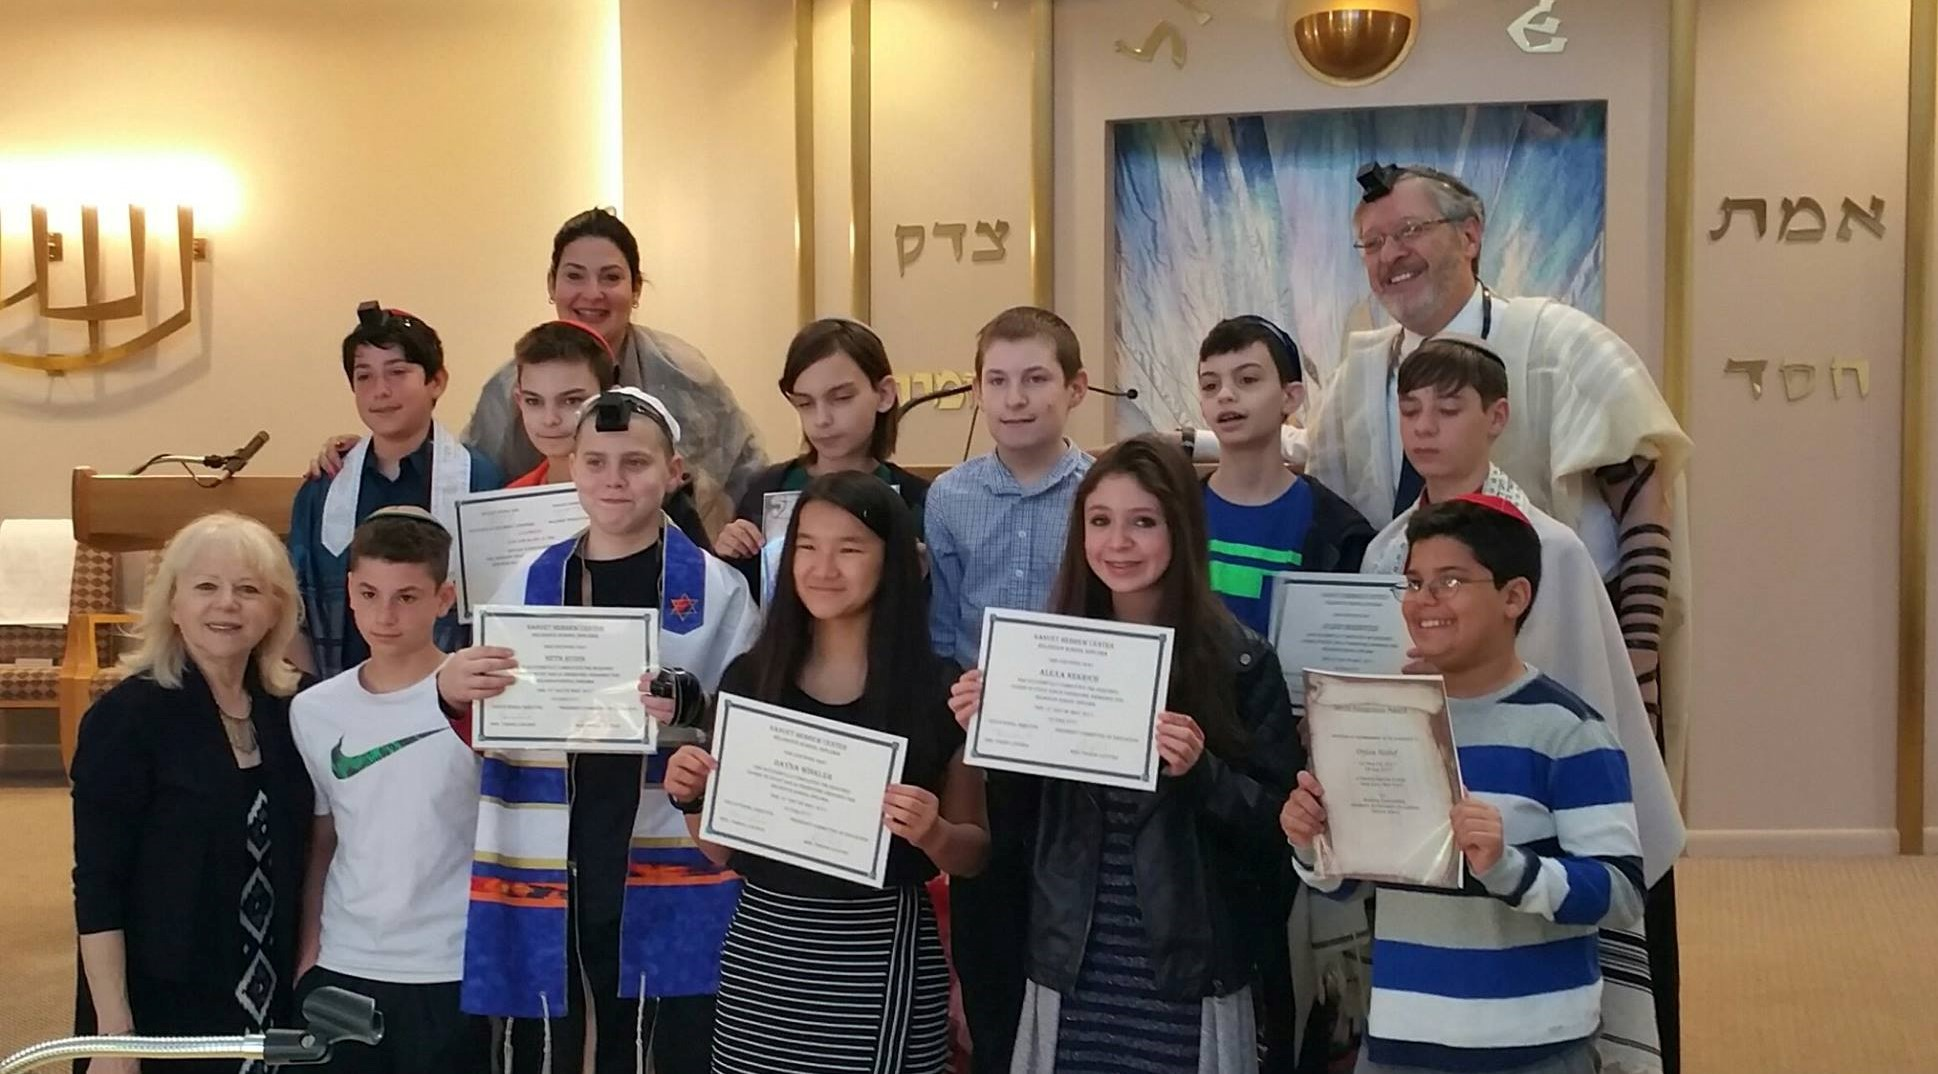 Welcome to the Nanuet Hebrew Center